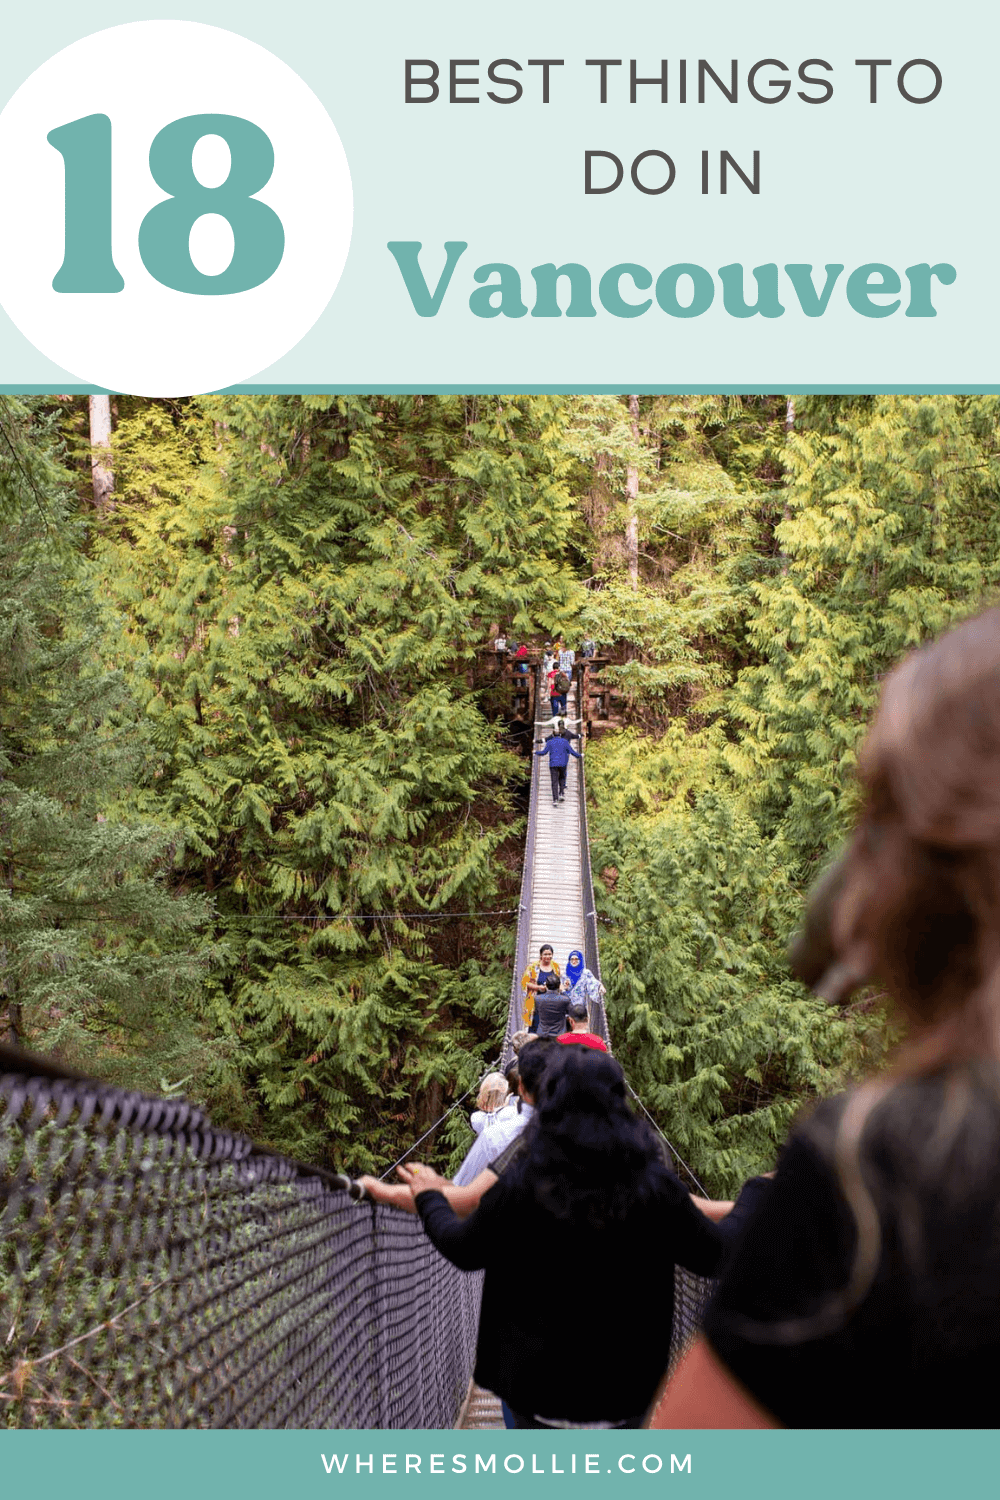 Exploring Vancouver during summer: A complete guide